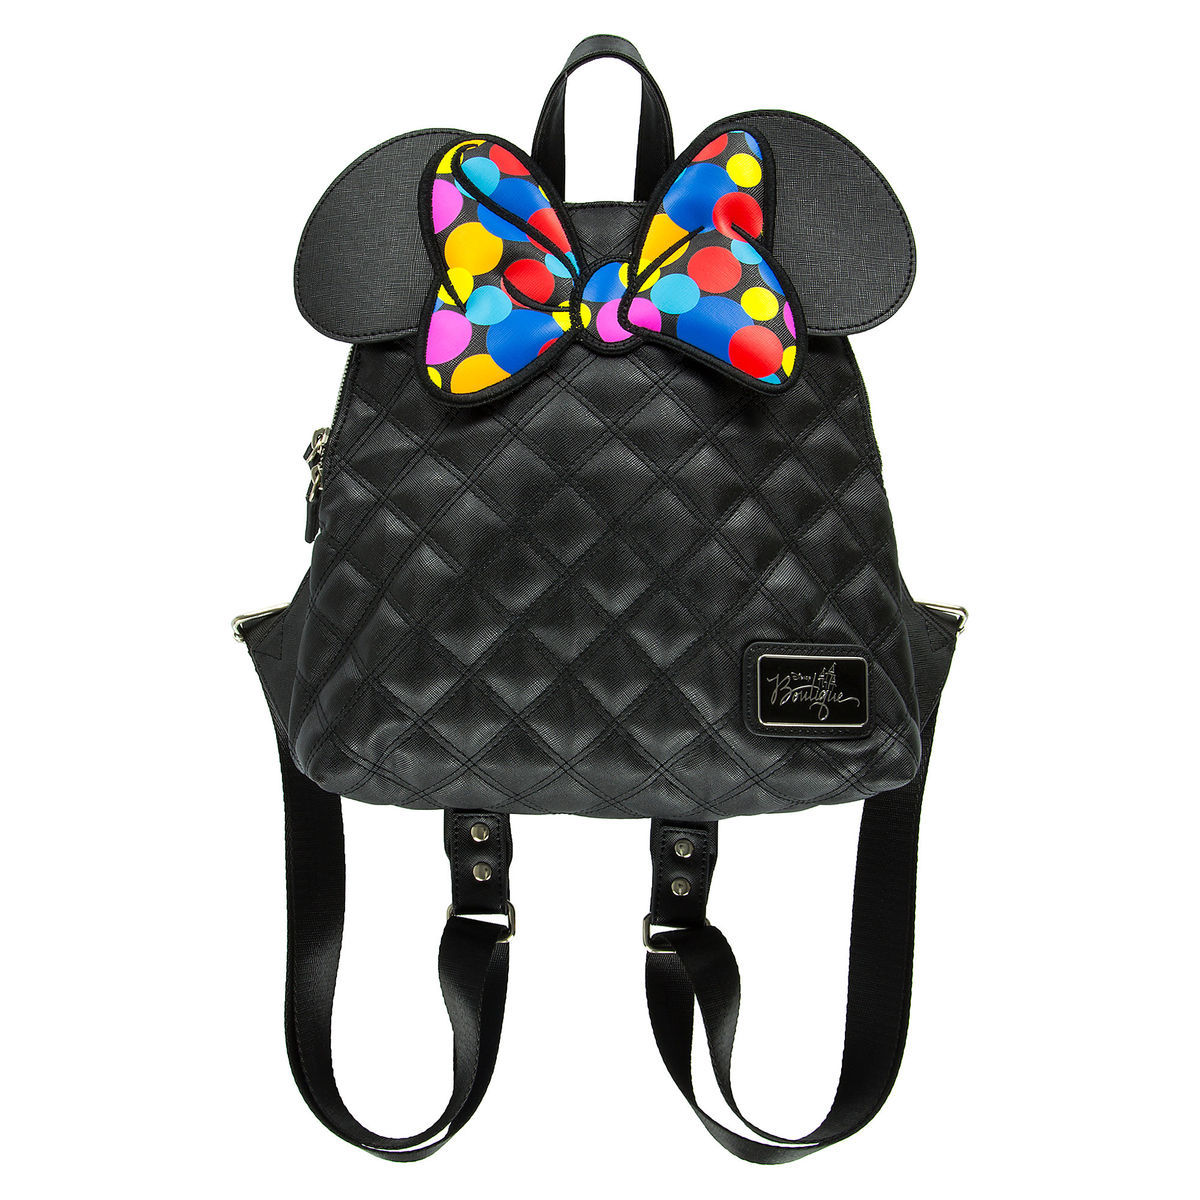 1326e0f5ed Product Image of Minnie Mouse Polka Dot Mini Backpack by Disney Boutique   1